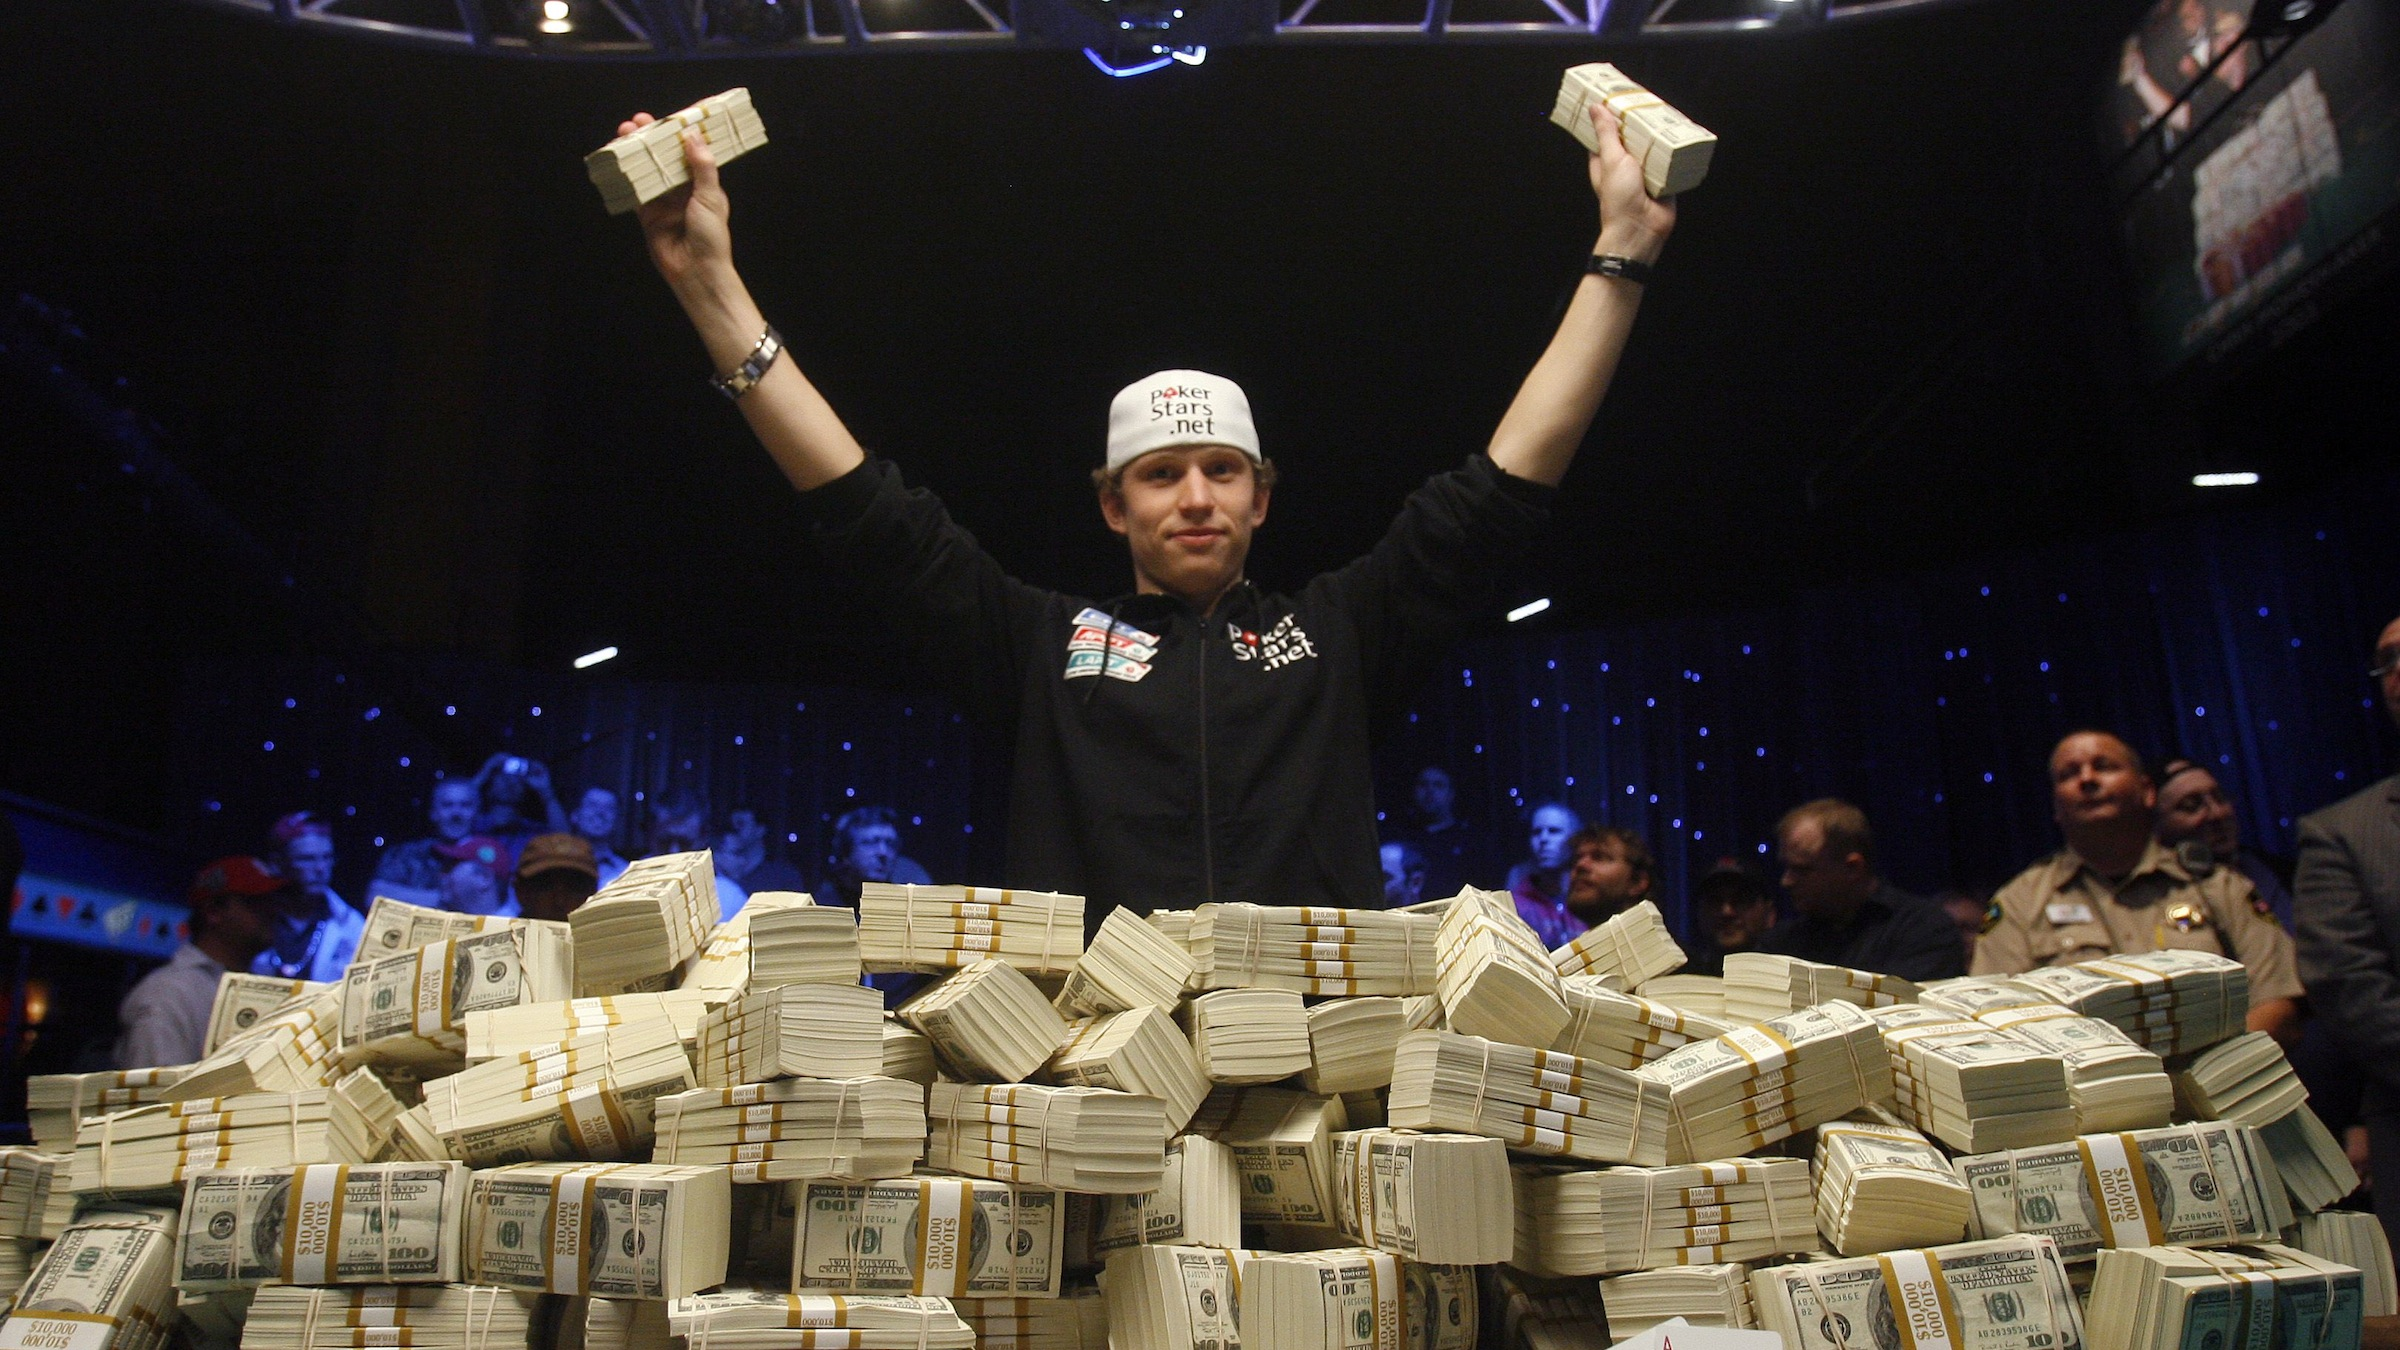 Peter Eastgate of Denmark poses with a pile of cash after winning the World Series of Poker championship in Las Vegas on Tuesday, Nov. 11, 2008. Eastgate won more than $9 million. (AP Photo/Isaac Brekken)